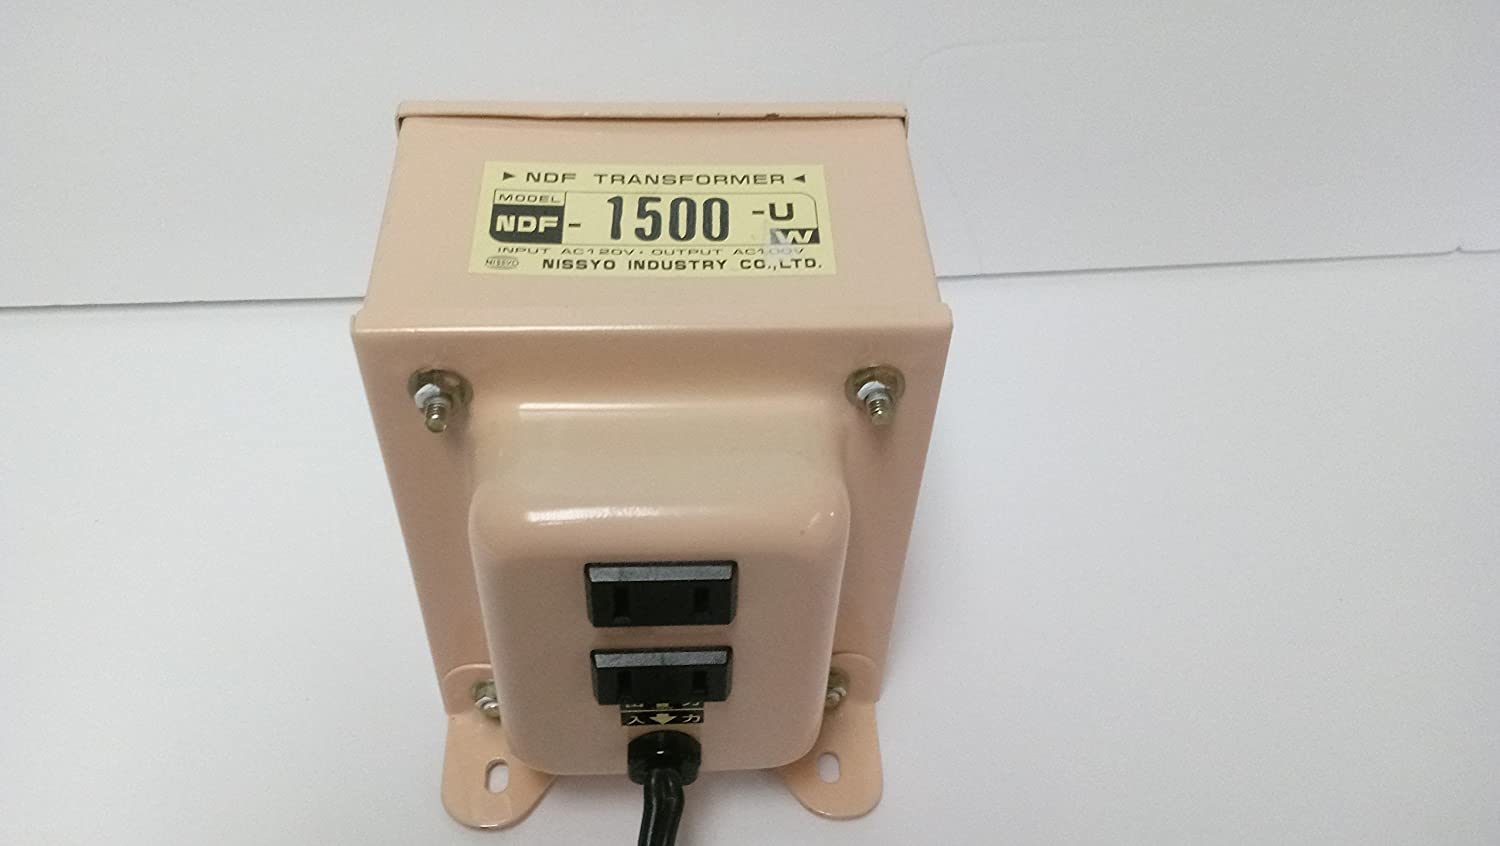 Nissyo Converter Nf Series (Decrease Voltage)120v→100v1500w Ndf-1500u(Henatsuki)